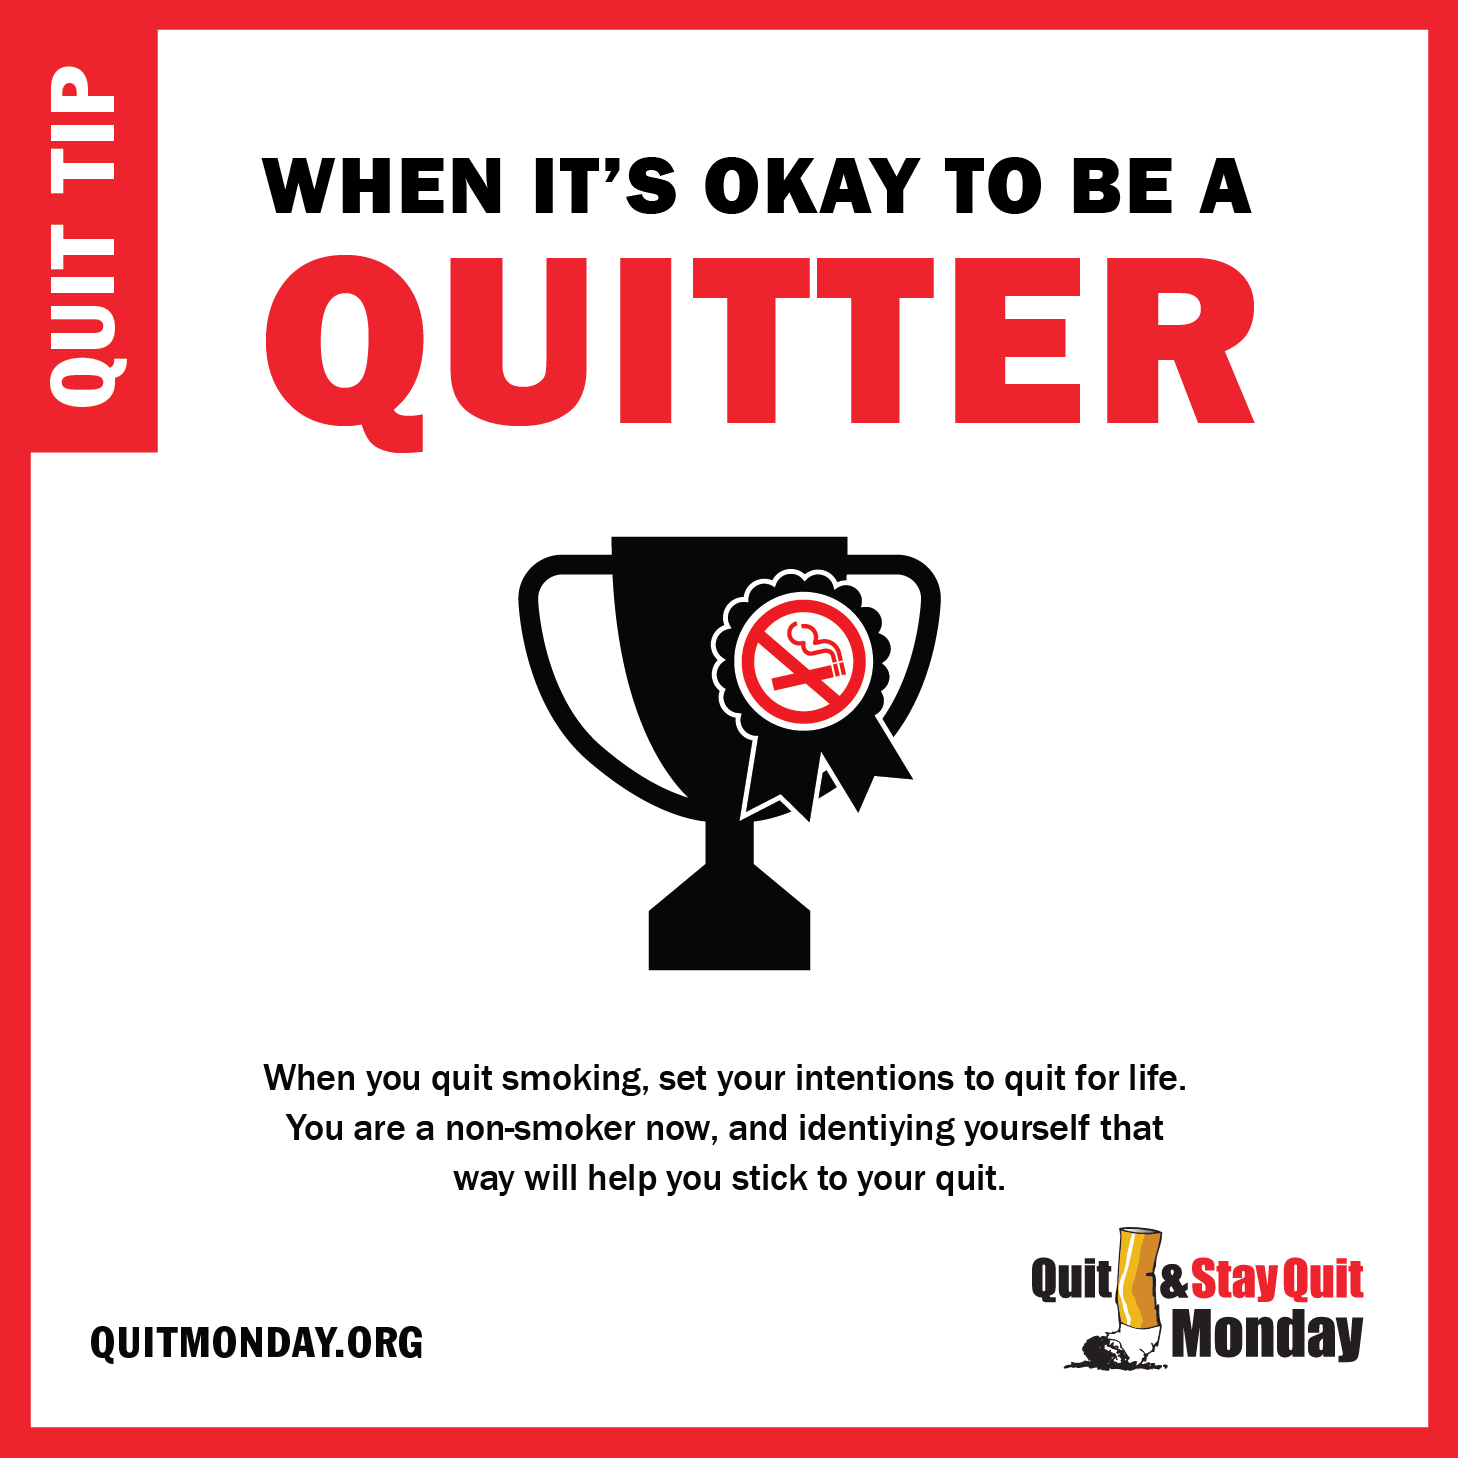 Pin on Quit Monday Tips